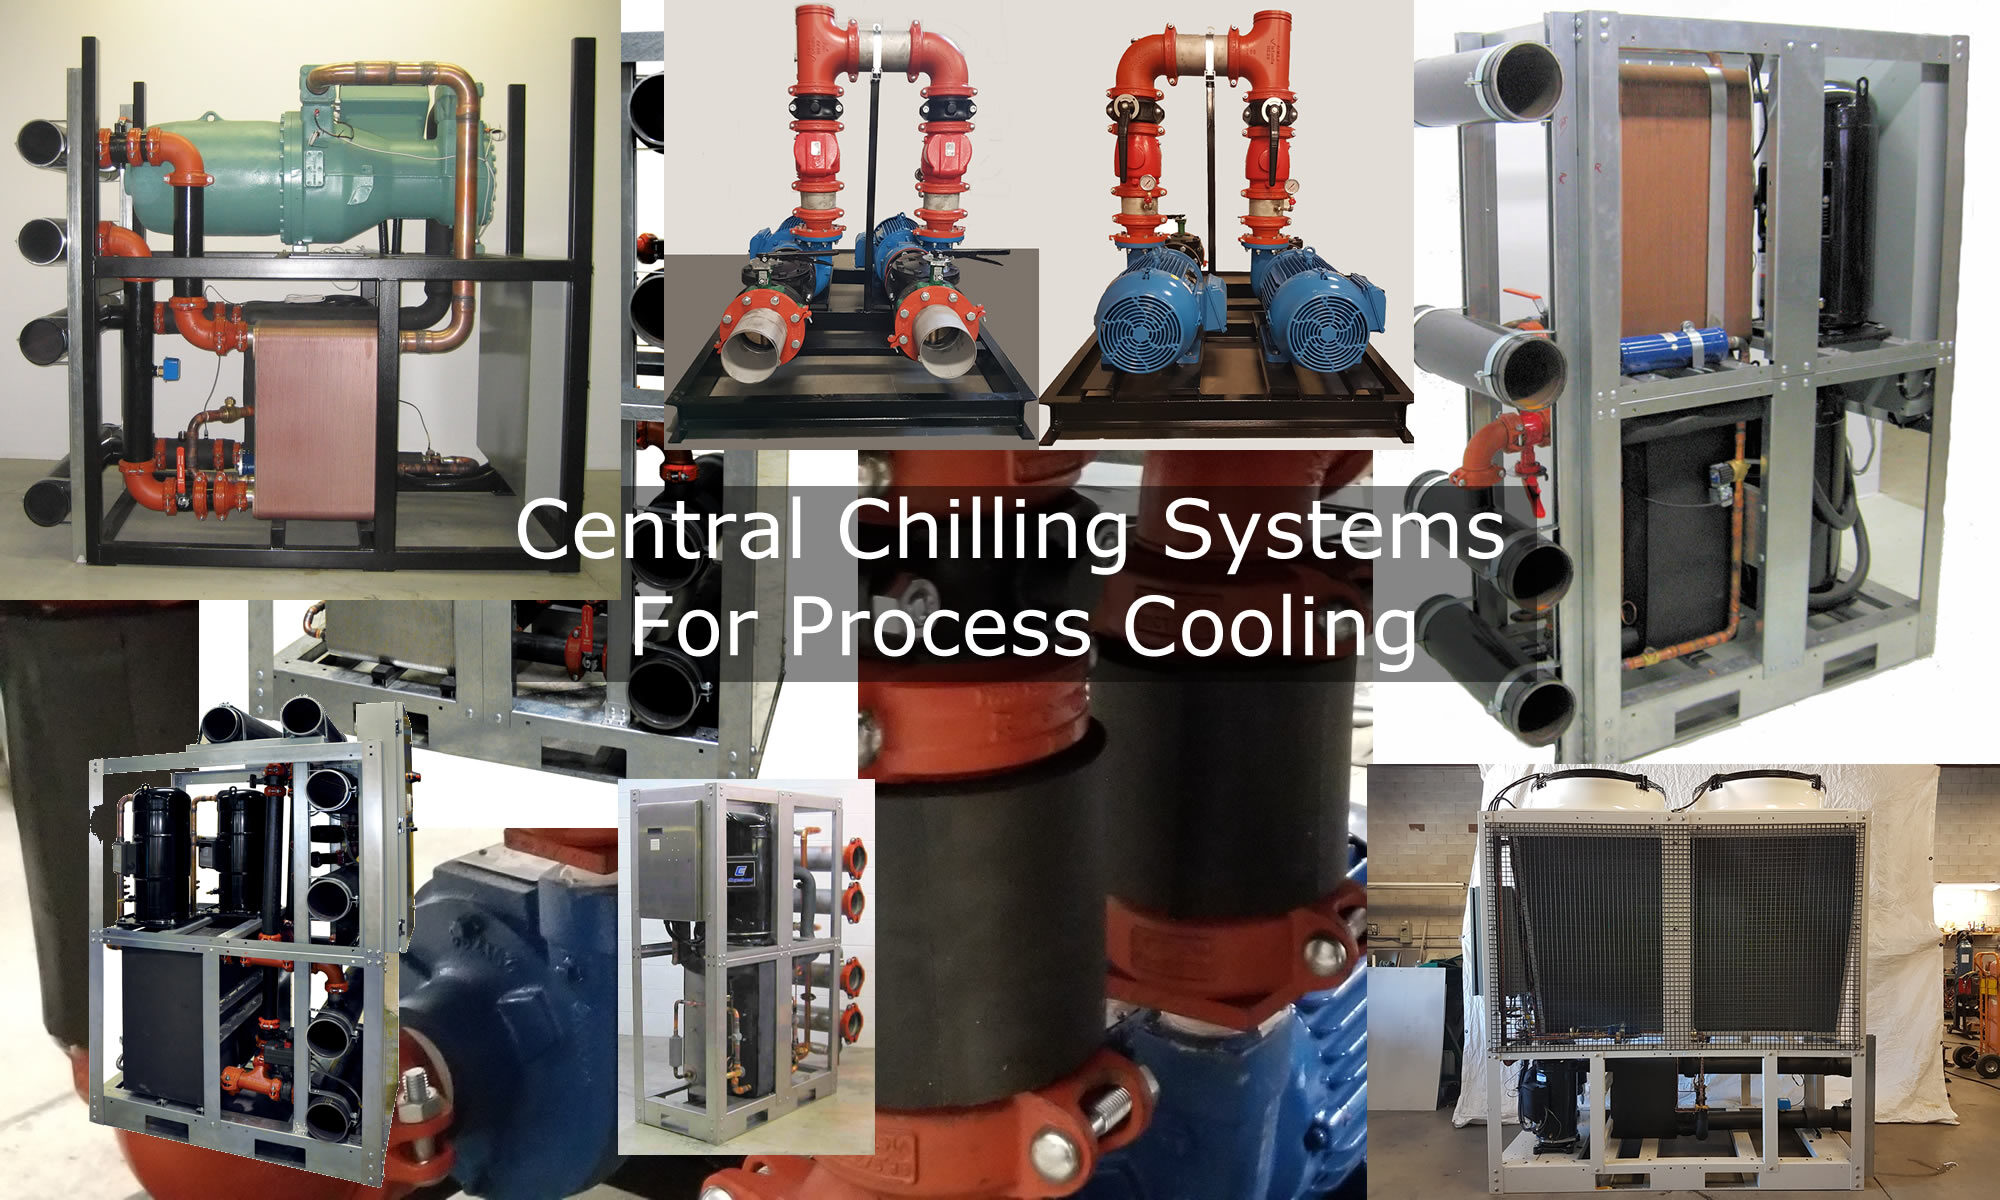 Central Chilling Systems For Process Cooling